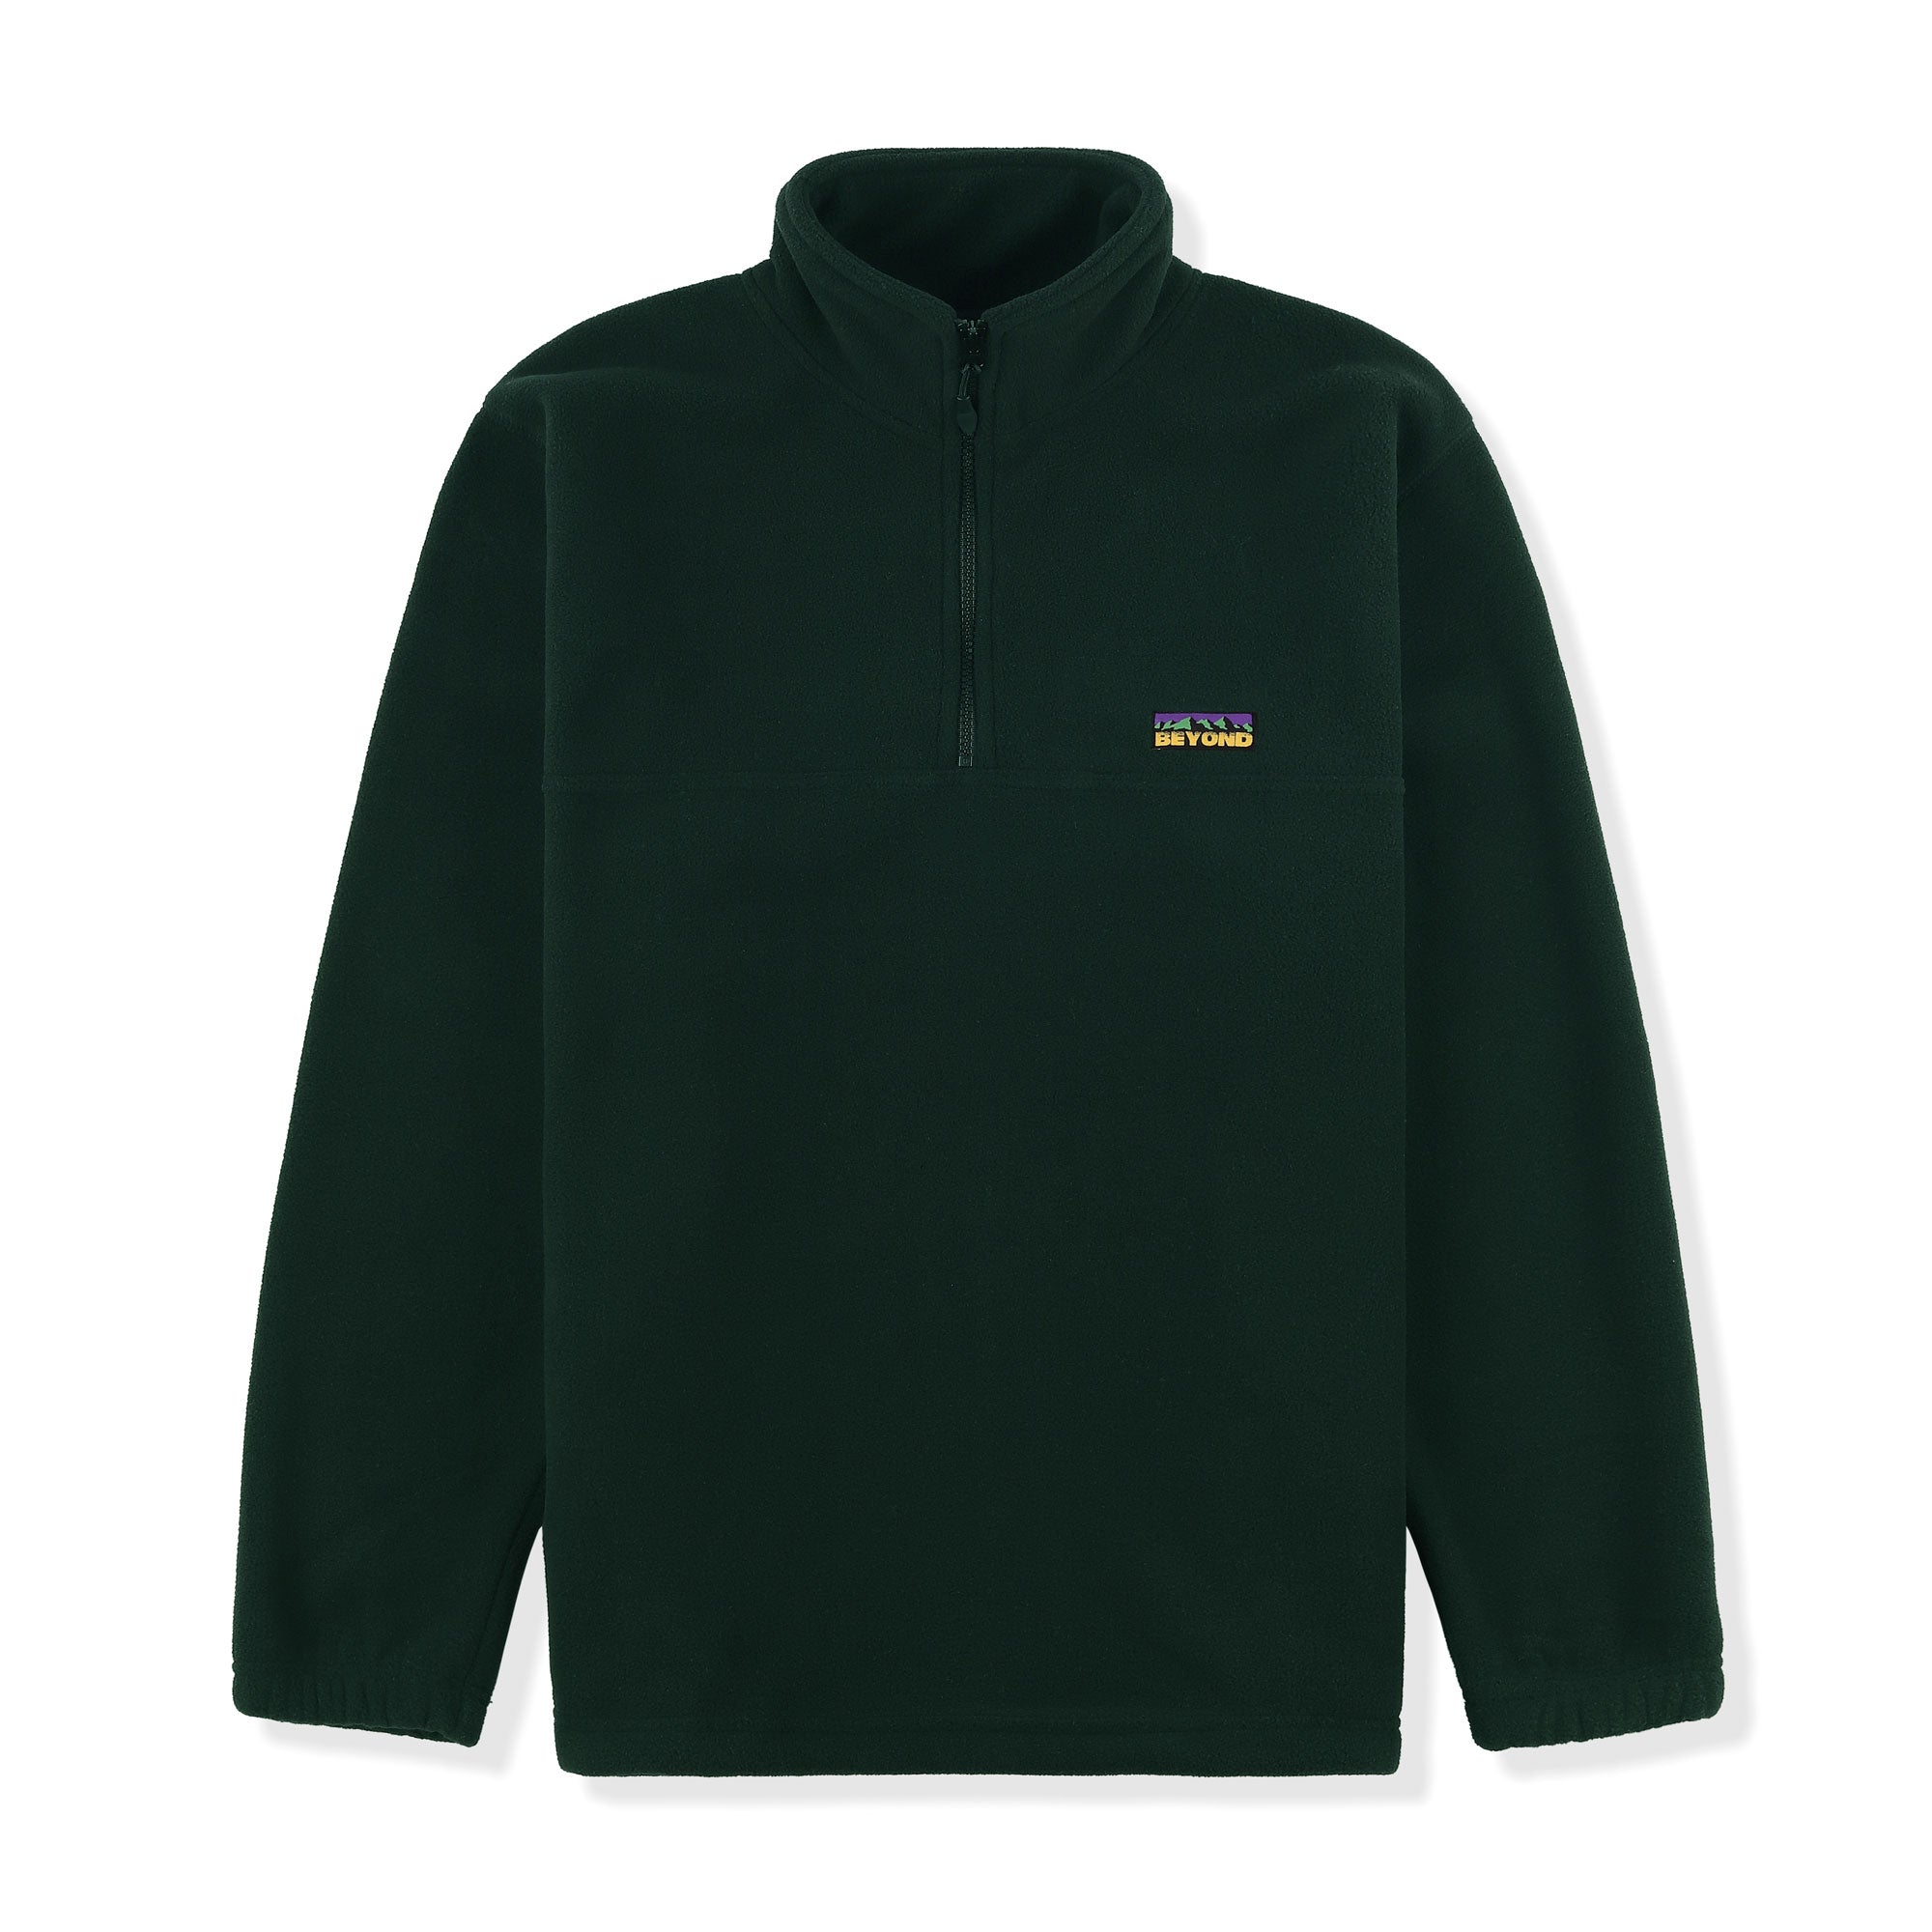 Beyond Patchemenjaro 2 1/4 Zip Fleece Product Photo #1